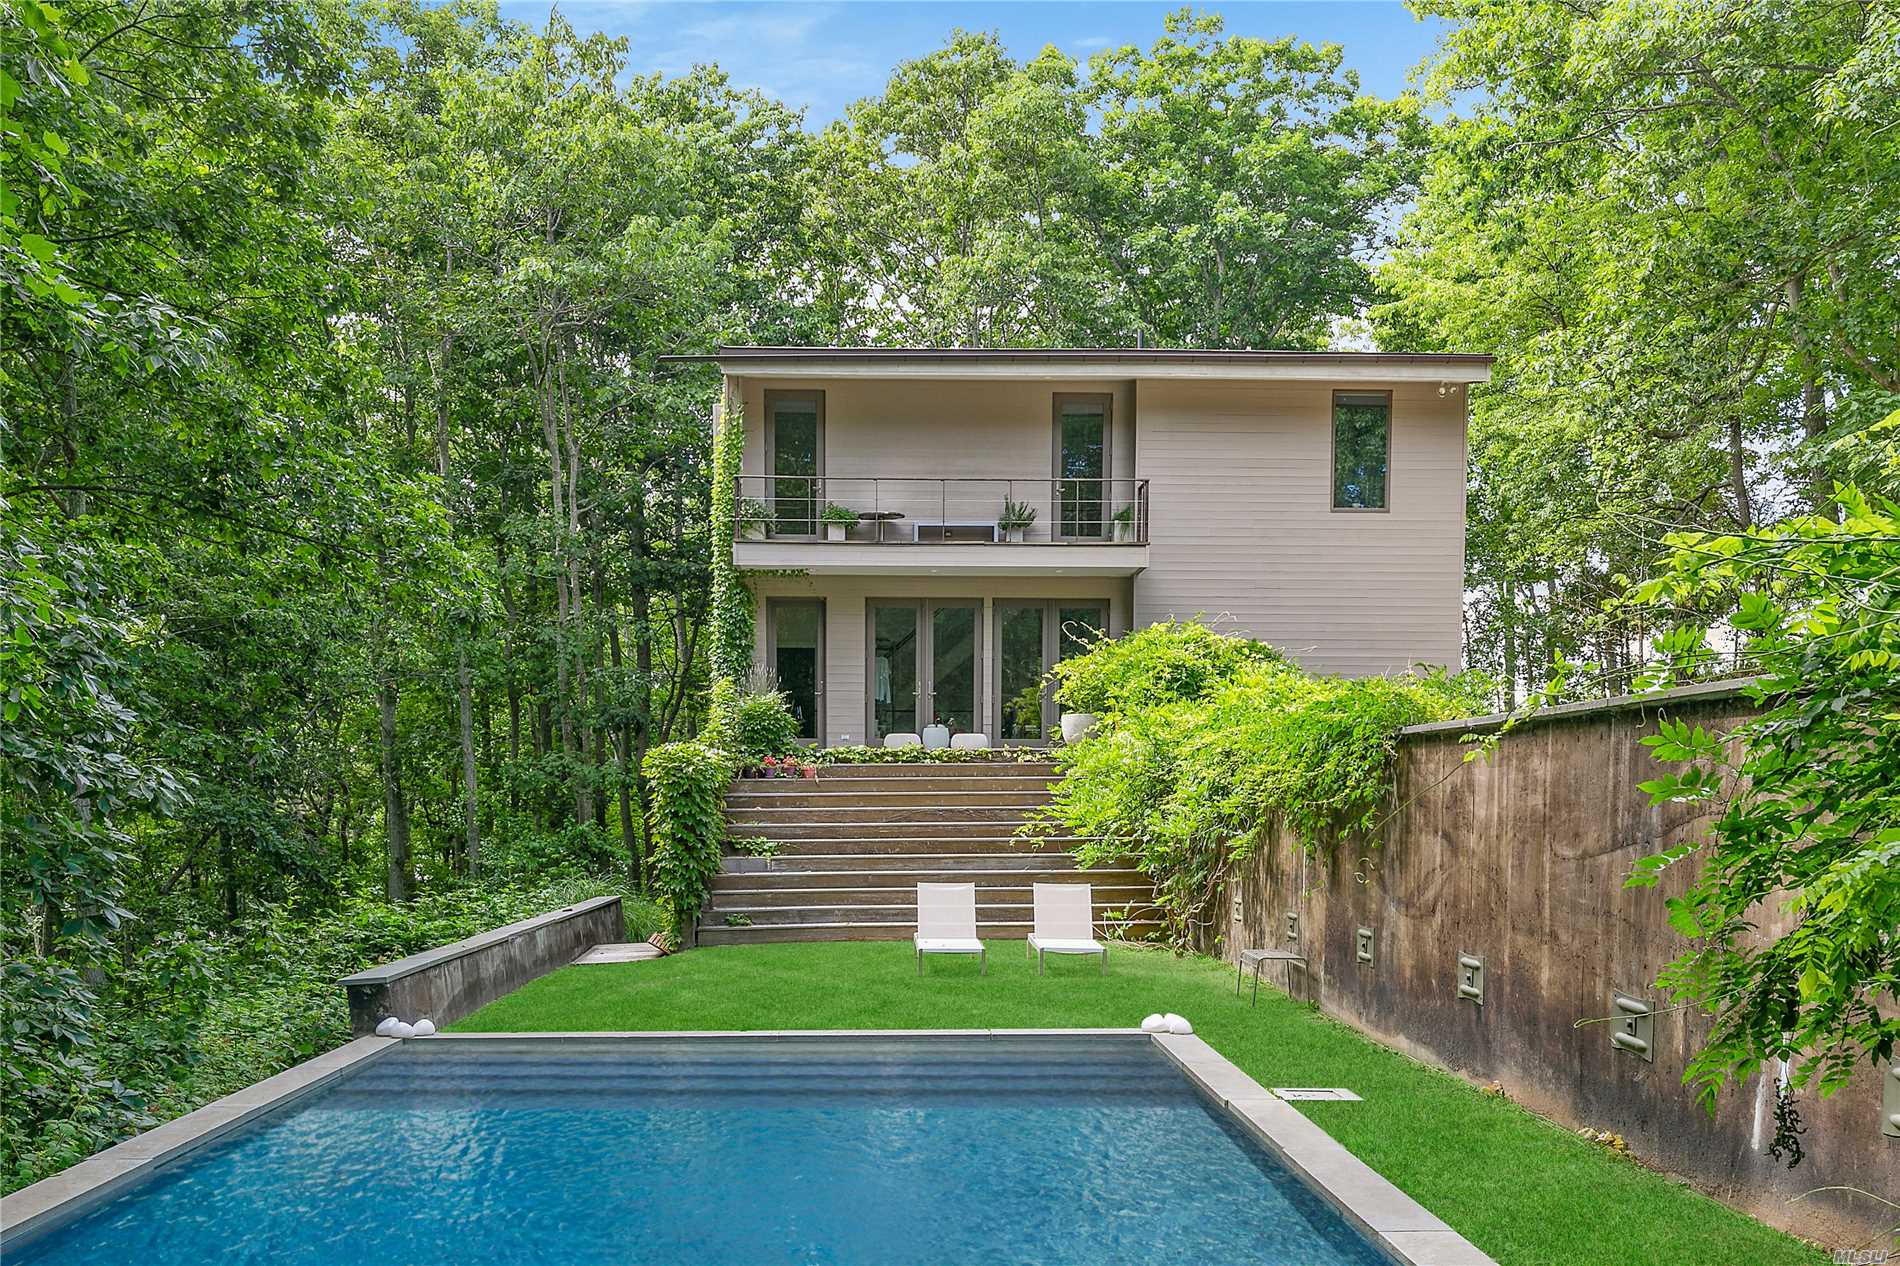 Simply Perfect Modern On Very Private Acre. Open Living Room, Dining Room And Eat-In Kitchen. W/Dramatic Glass Walls. Overlooking A Spacious Mahogany Dining Deck In The Treetops. Master Bedroom En Suite With Balcony. Three Additional En Suite Bedrooms, Two Lead To Pool. Inground 18X36 Gunite Pool & Outdoor Shower. One Of The Highest Elevations On Shelter Island. Near Beach, Dining, Golf.